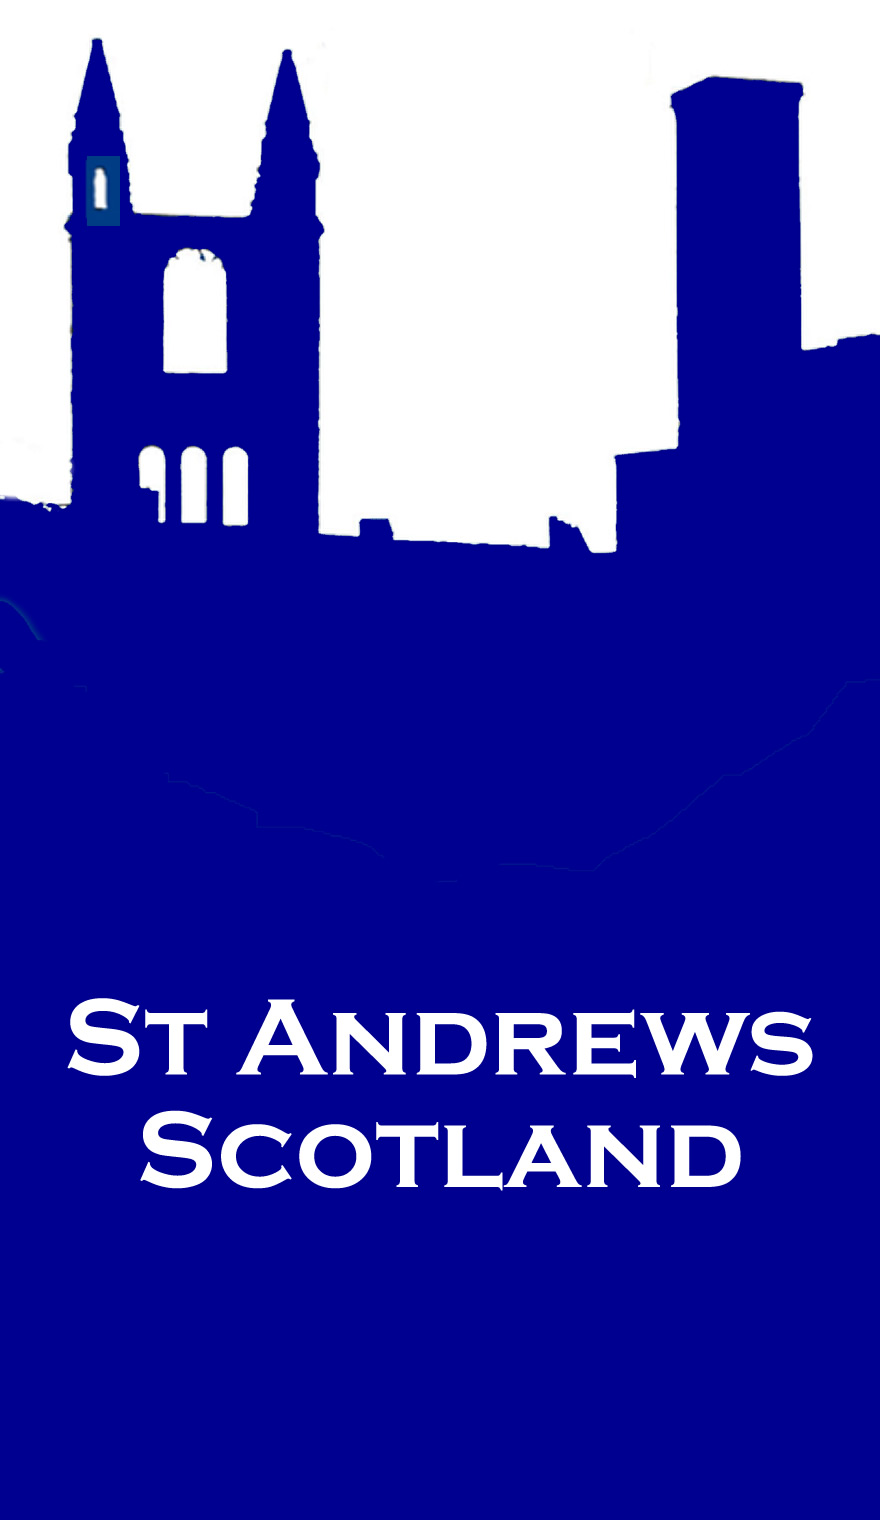 The Arms of the Royal Burgh of St.Andrews Community Council (Used by permission )